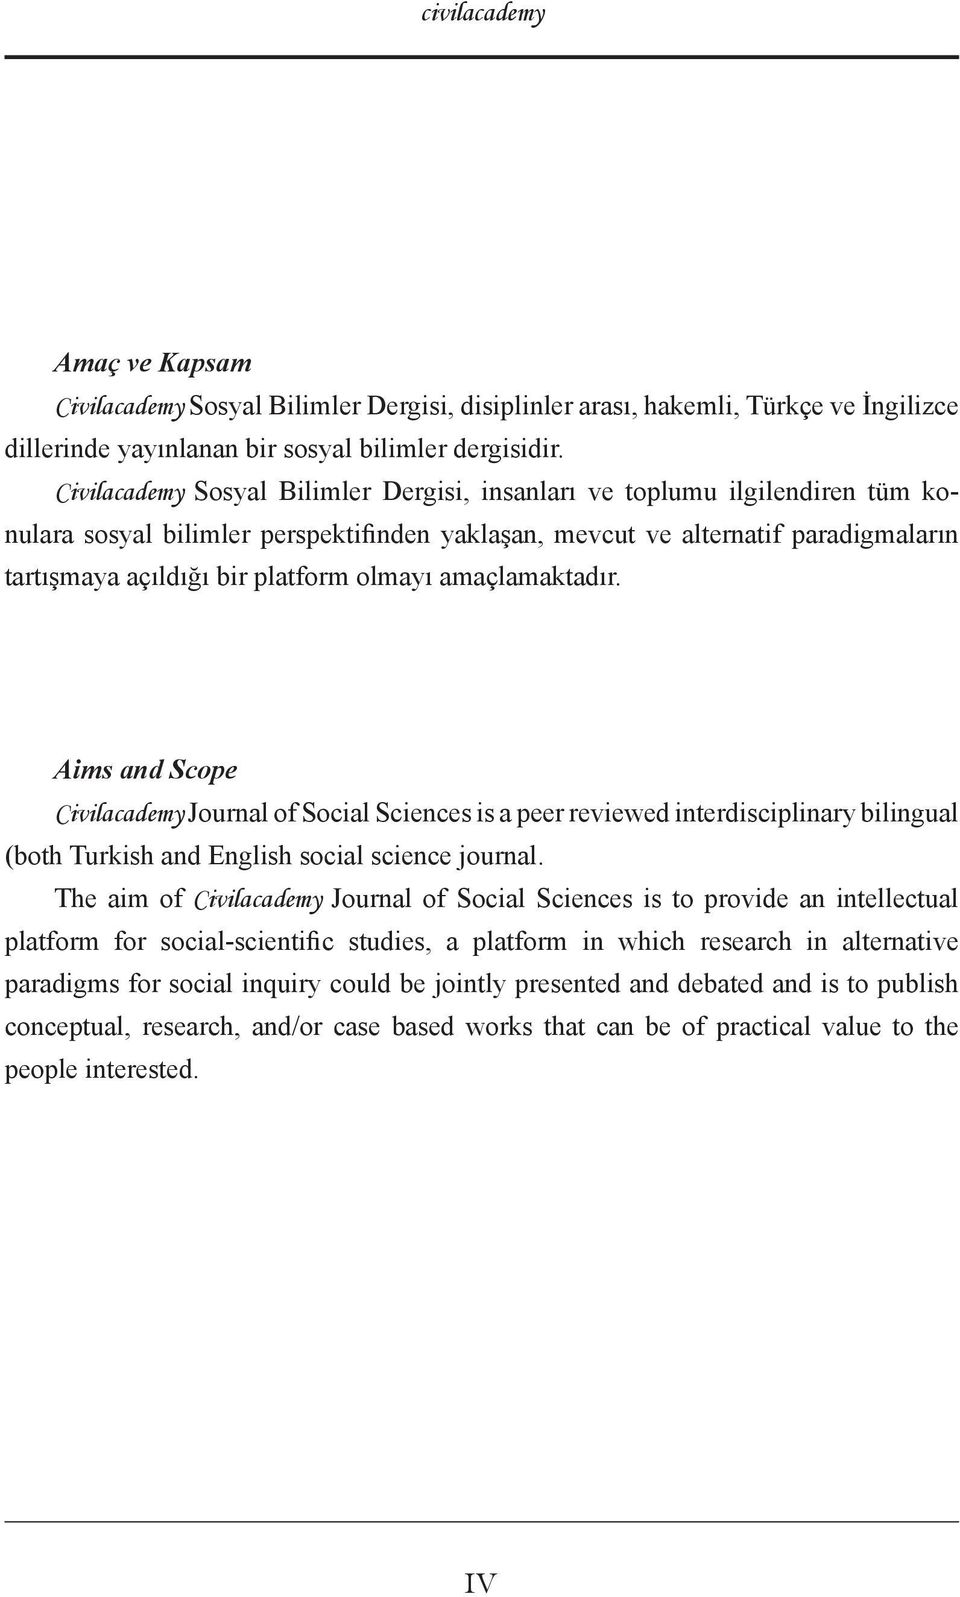 olmayı amaçlamaktadır. Aims and Scope Civilacademy Journal of Social Sciences is a peer reviewed interdisciplinary bilingual (both Turkish and English social science journal.